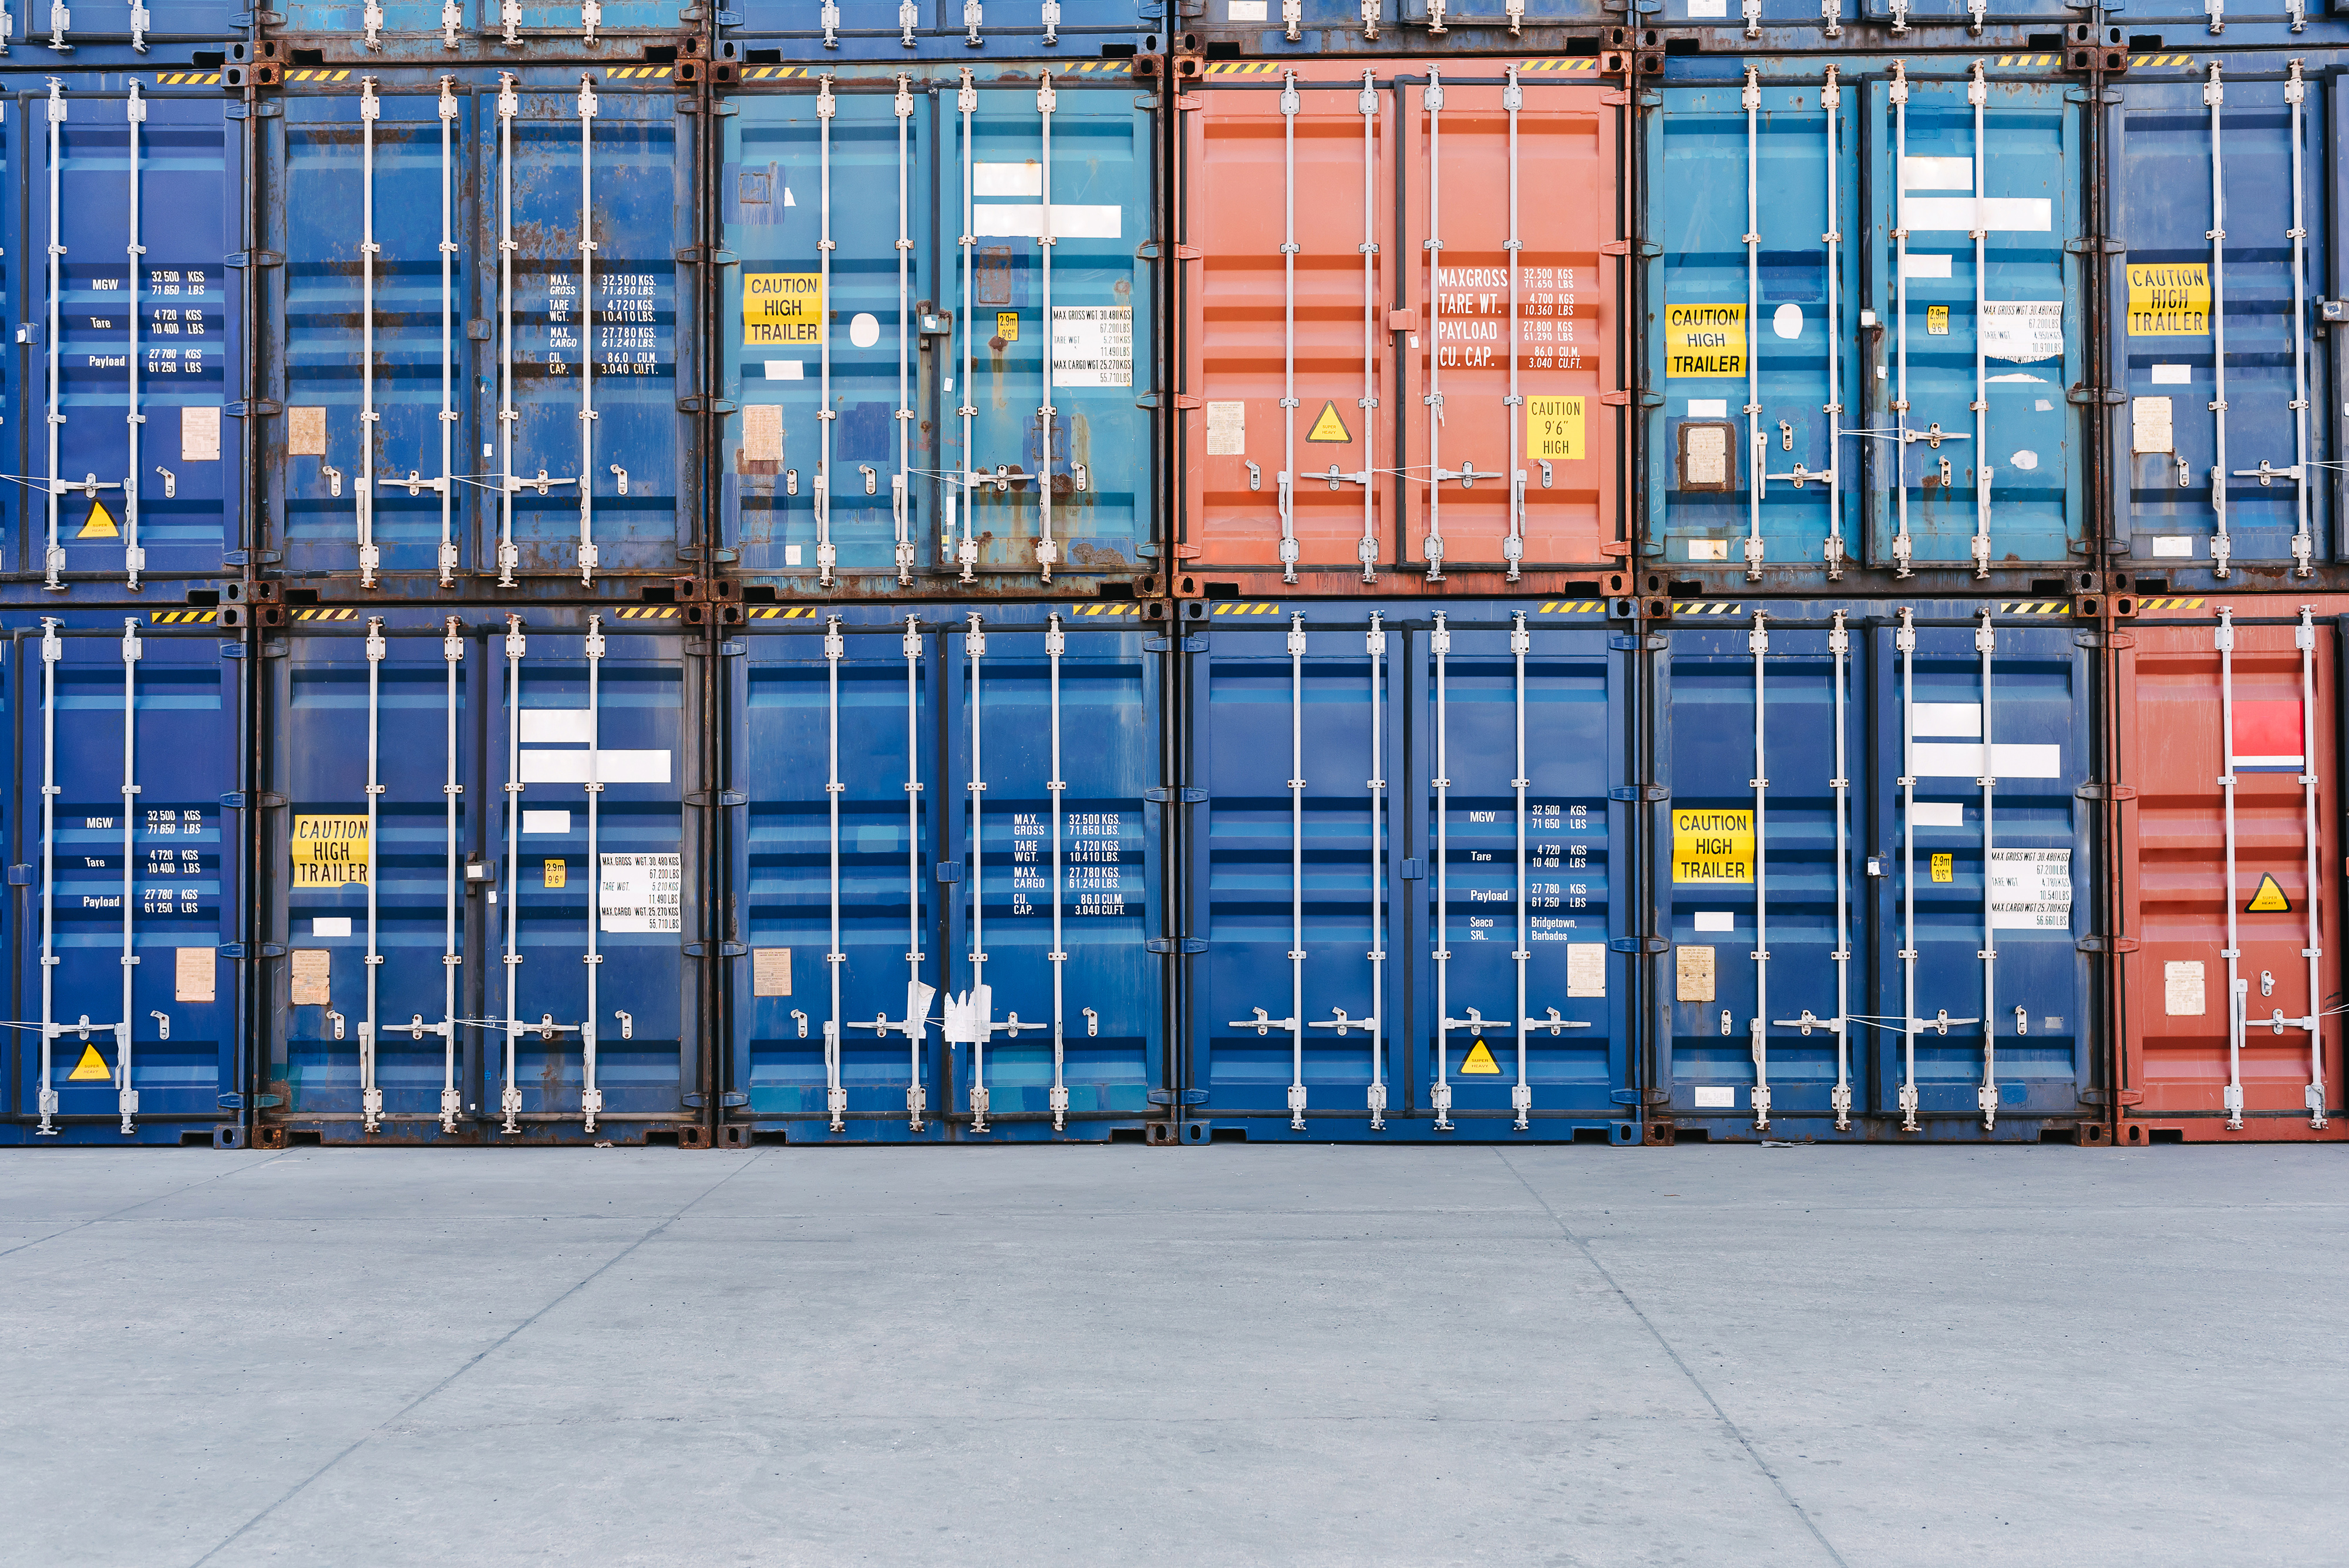 Containers stacked in the logistics center 54566